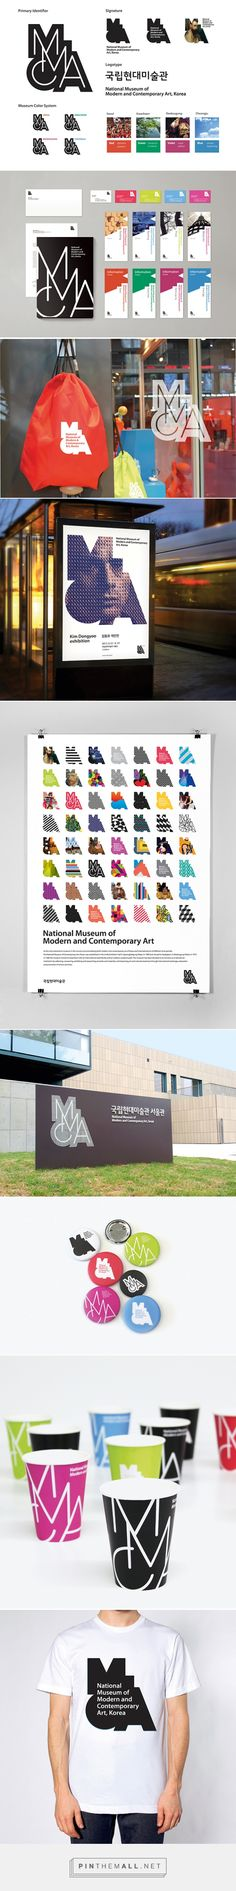 MMCA (National Museum of Modern and Contemporary Art, Korea) - 2013 | By…